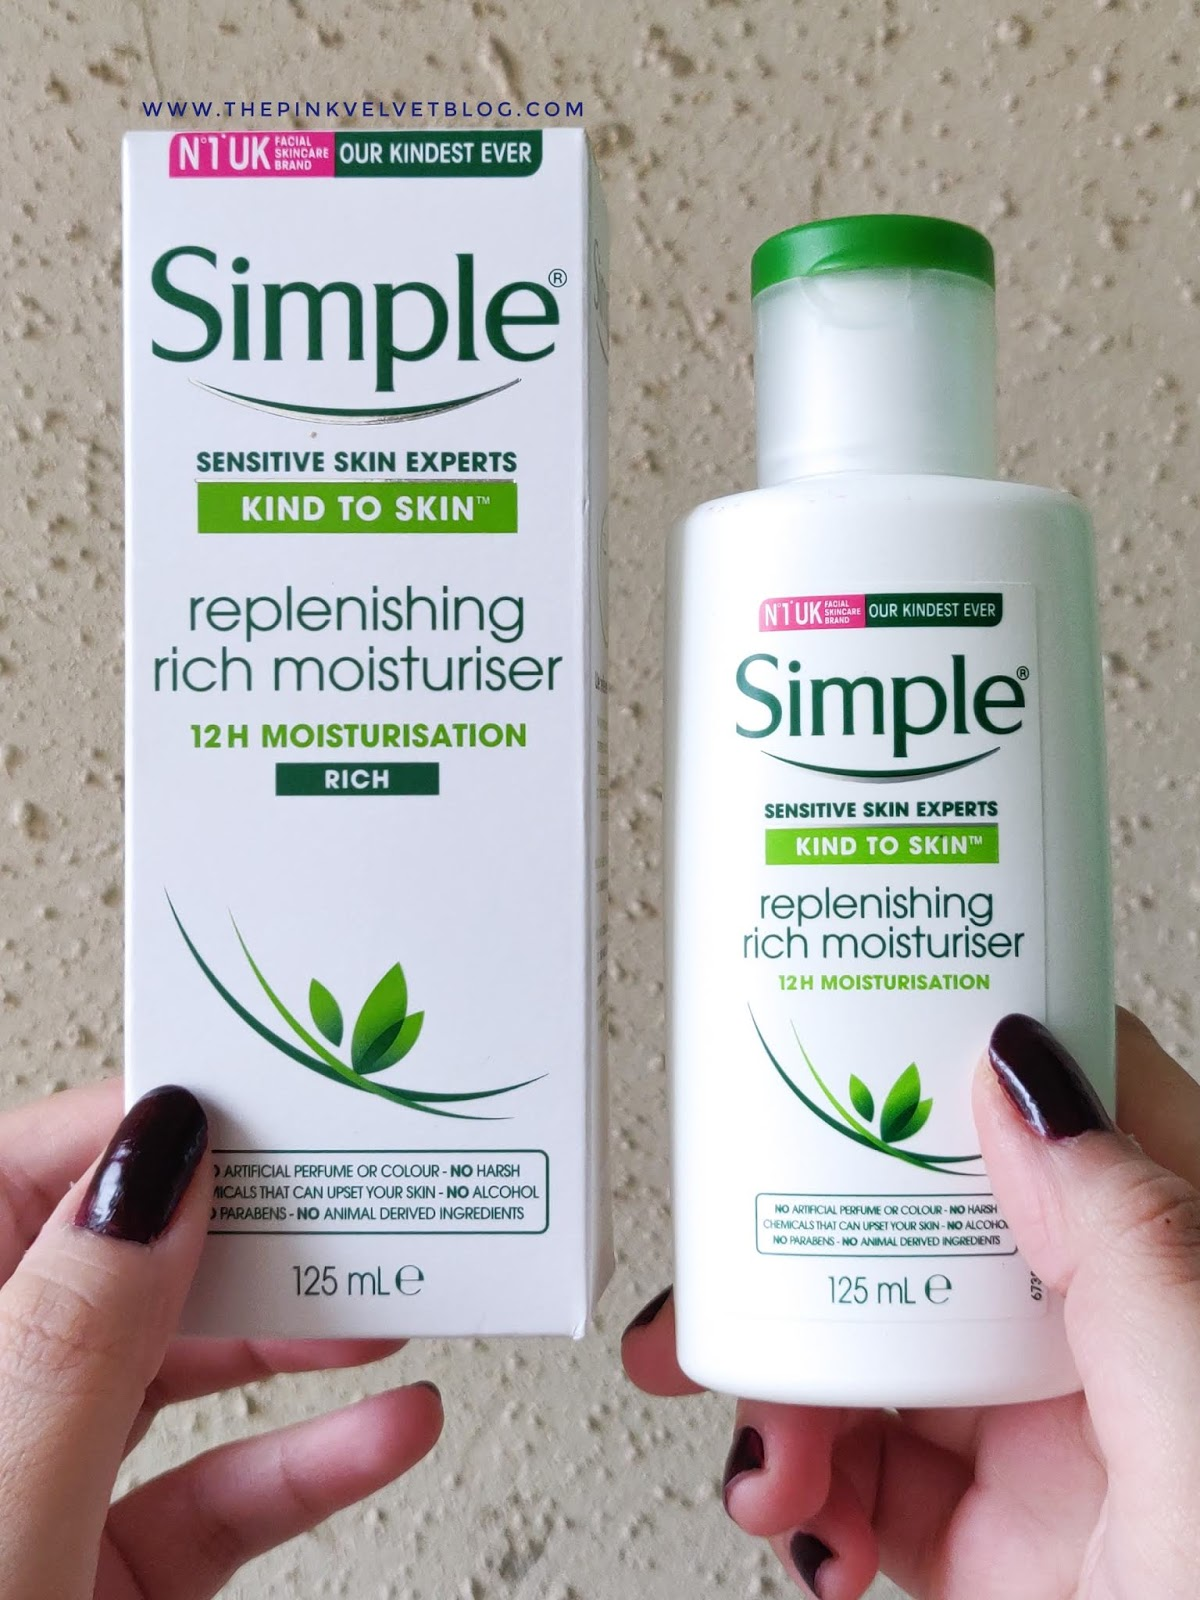 Simple Replenishing Rich Moisturizer - Review | Sensitive Skin Experts